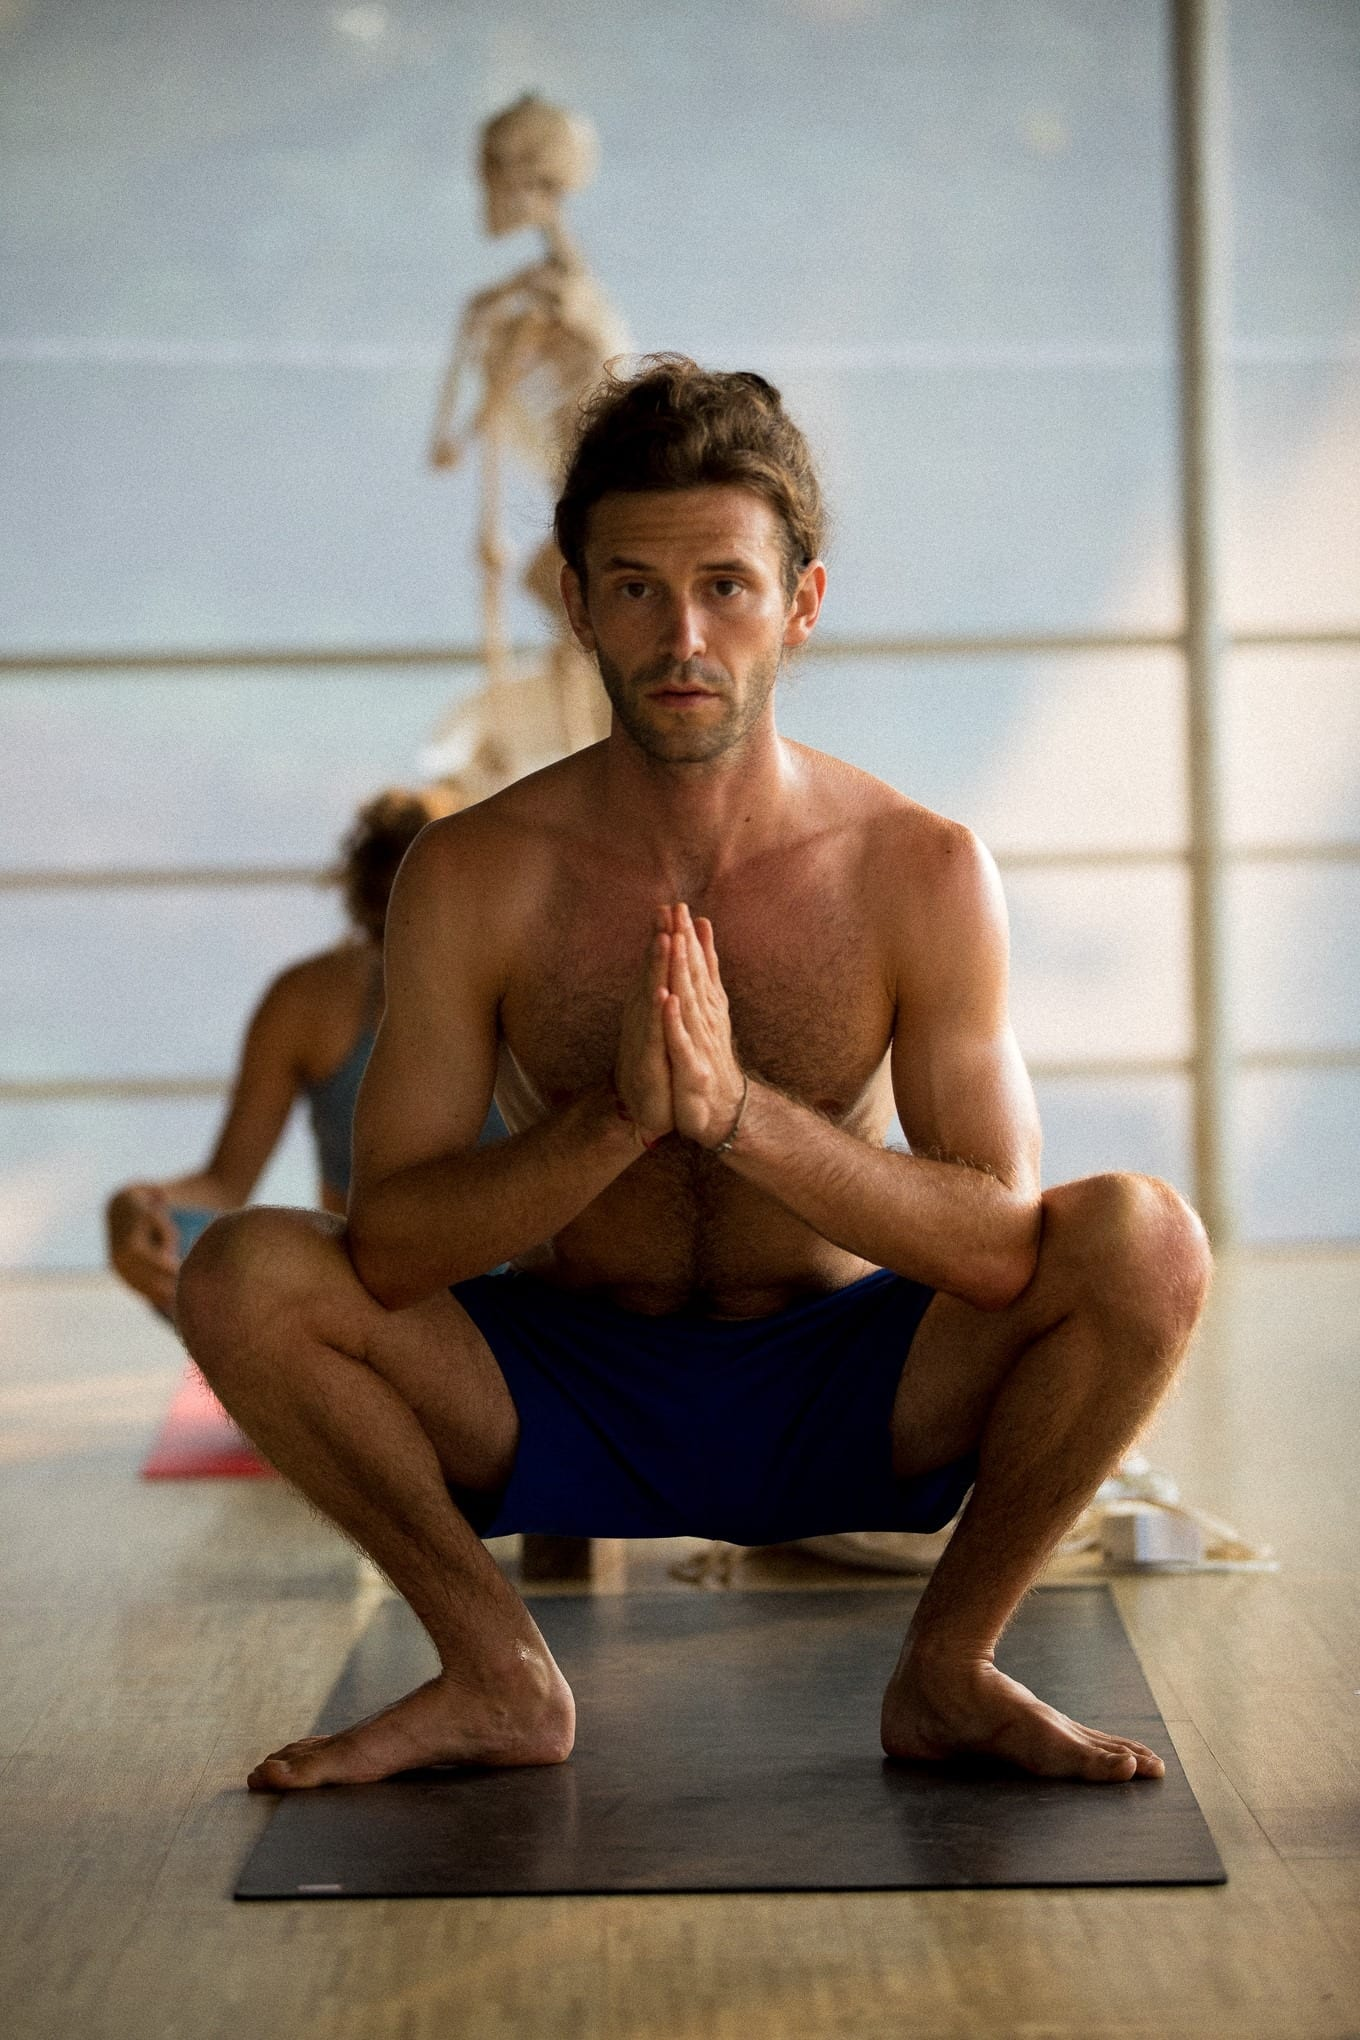 Yoga - What do we mean when we say namaste?